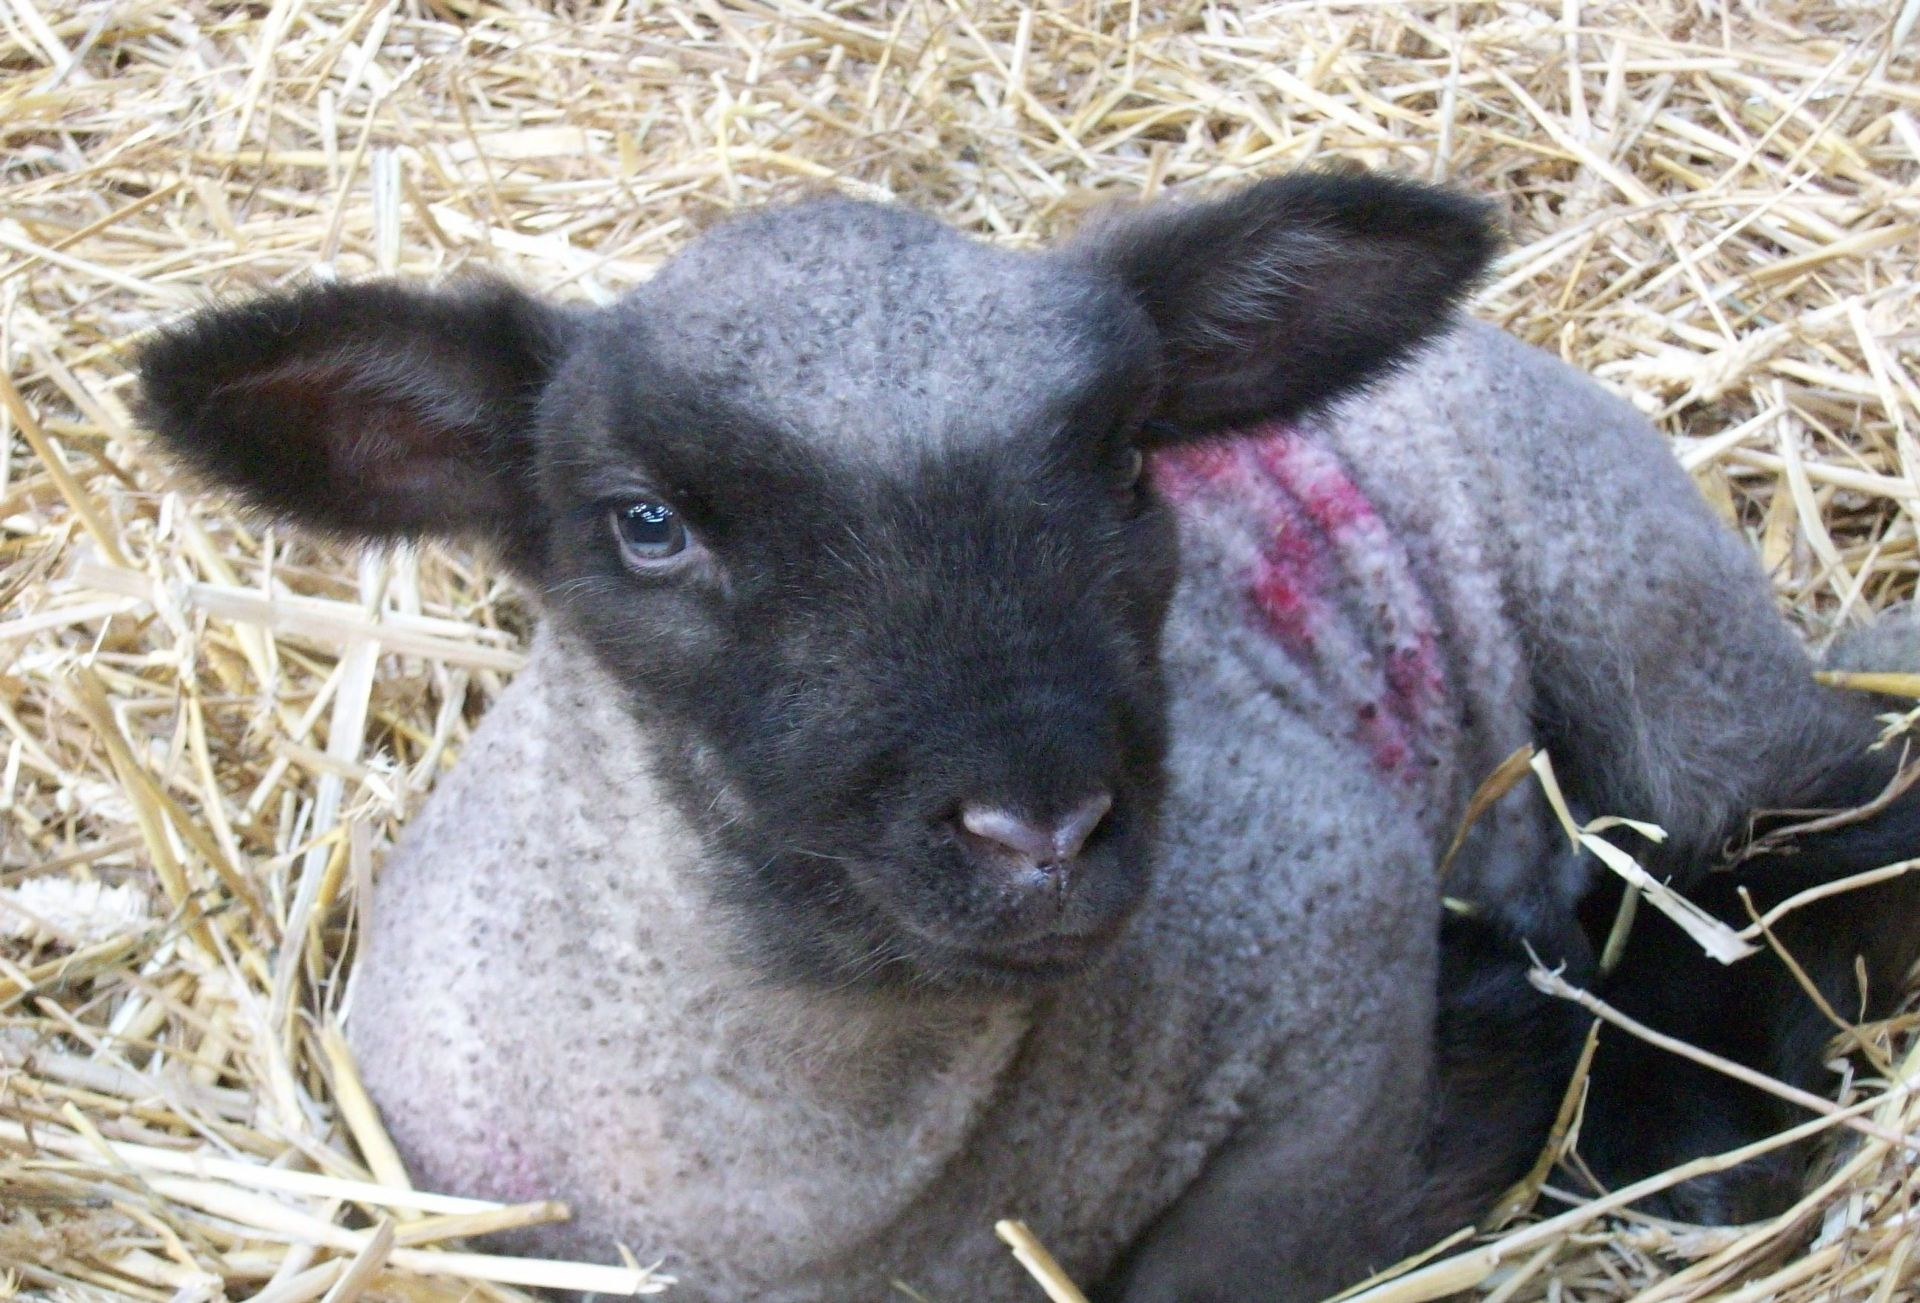 Guests are welcome to cuddle lambs and watch any being born during the lambing season during March